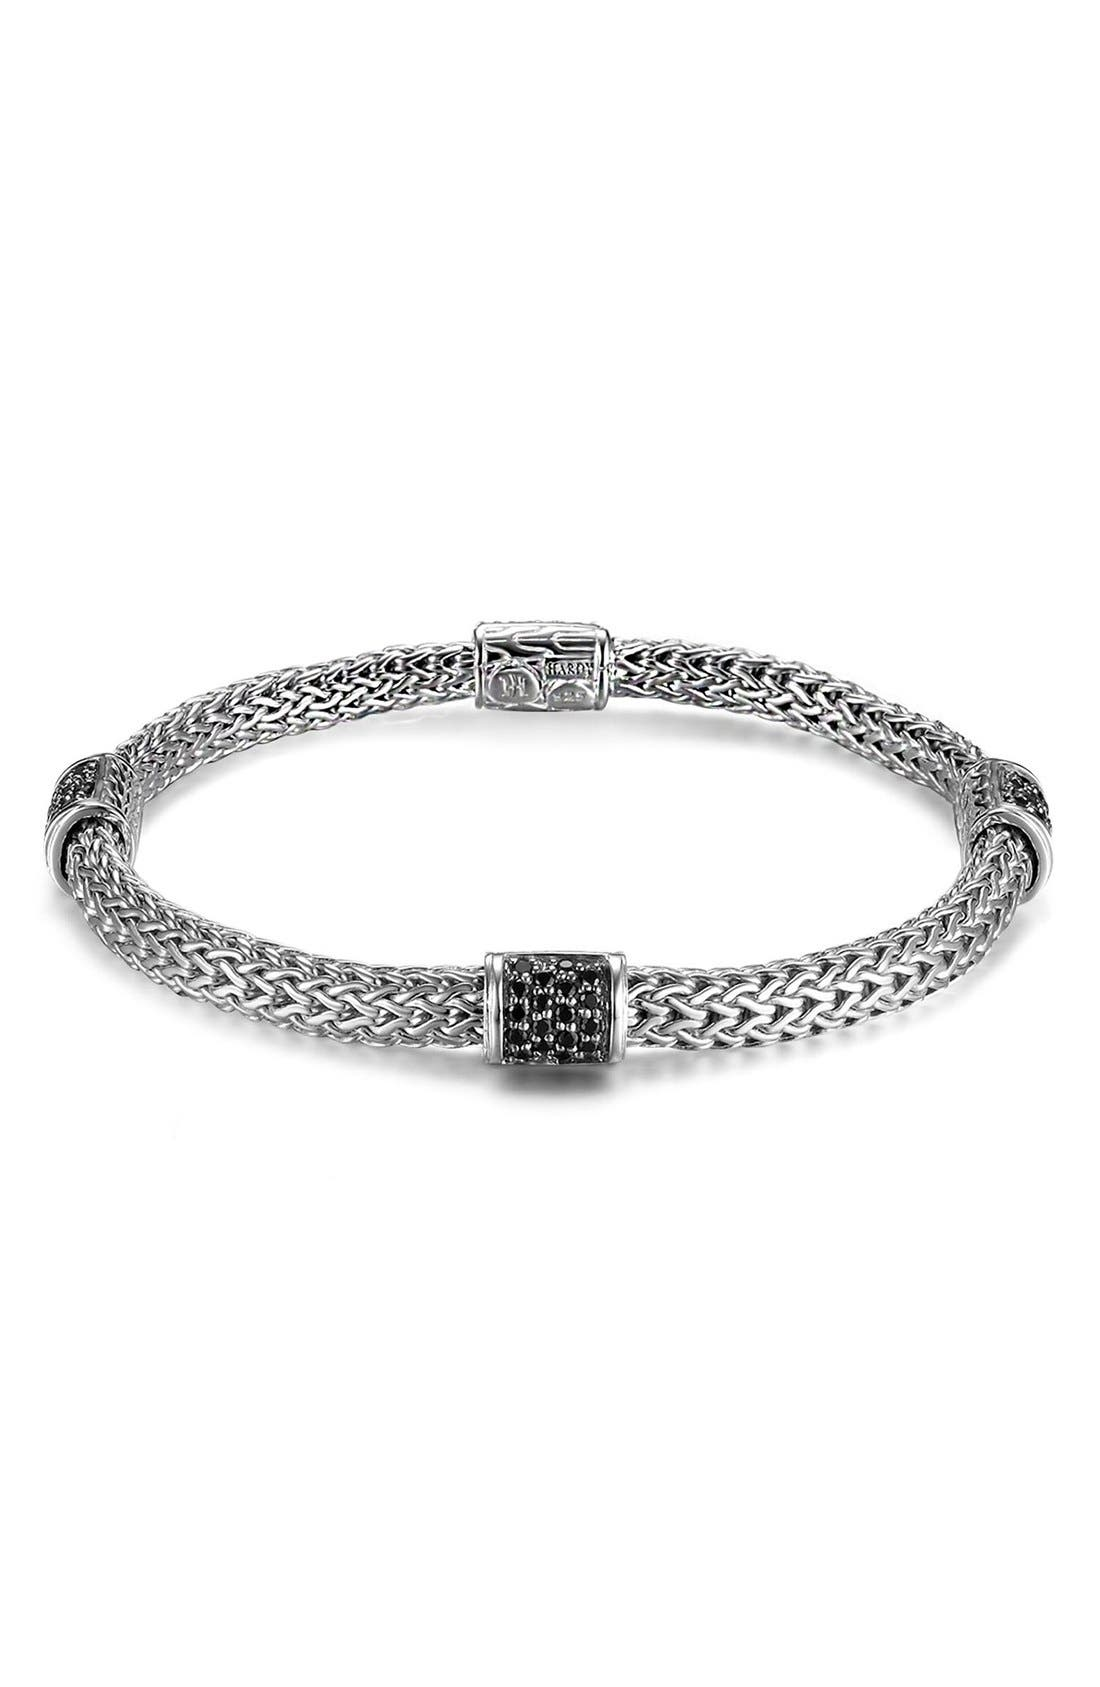 'Classic Chain - Lava' Extra Small Braided Bracelet,                             Main thumbnail 1, color,                             Silver/ Black Sapphire